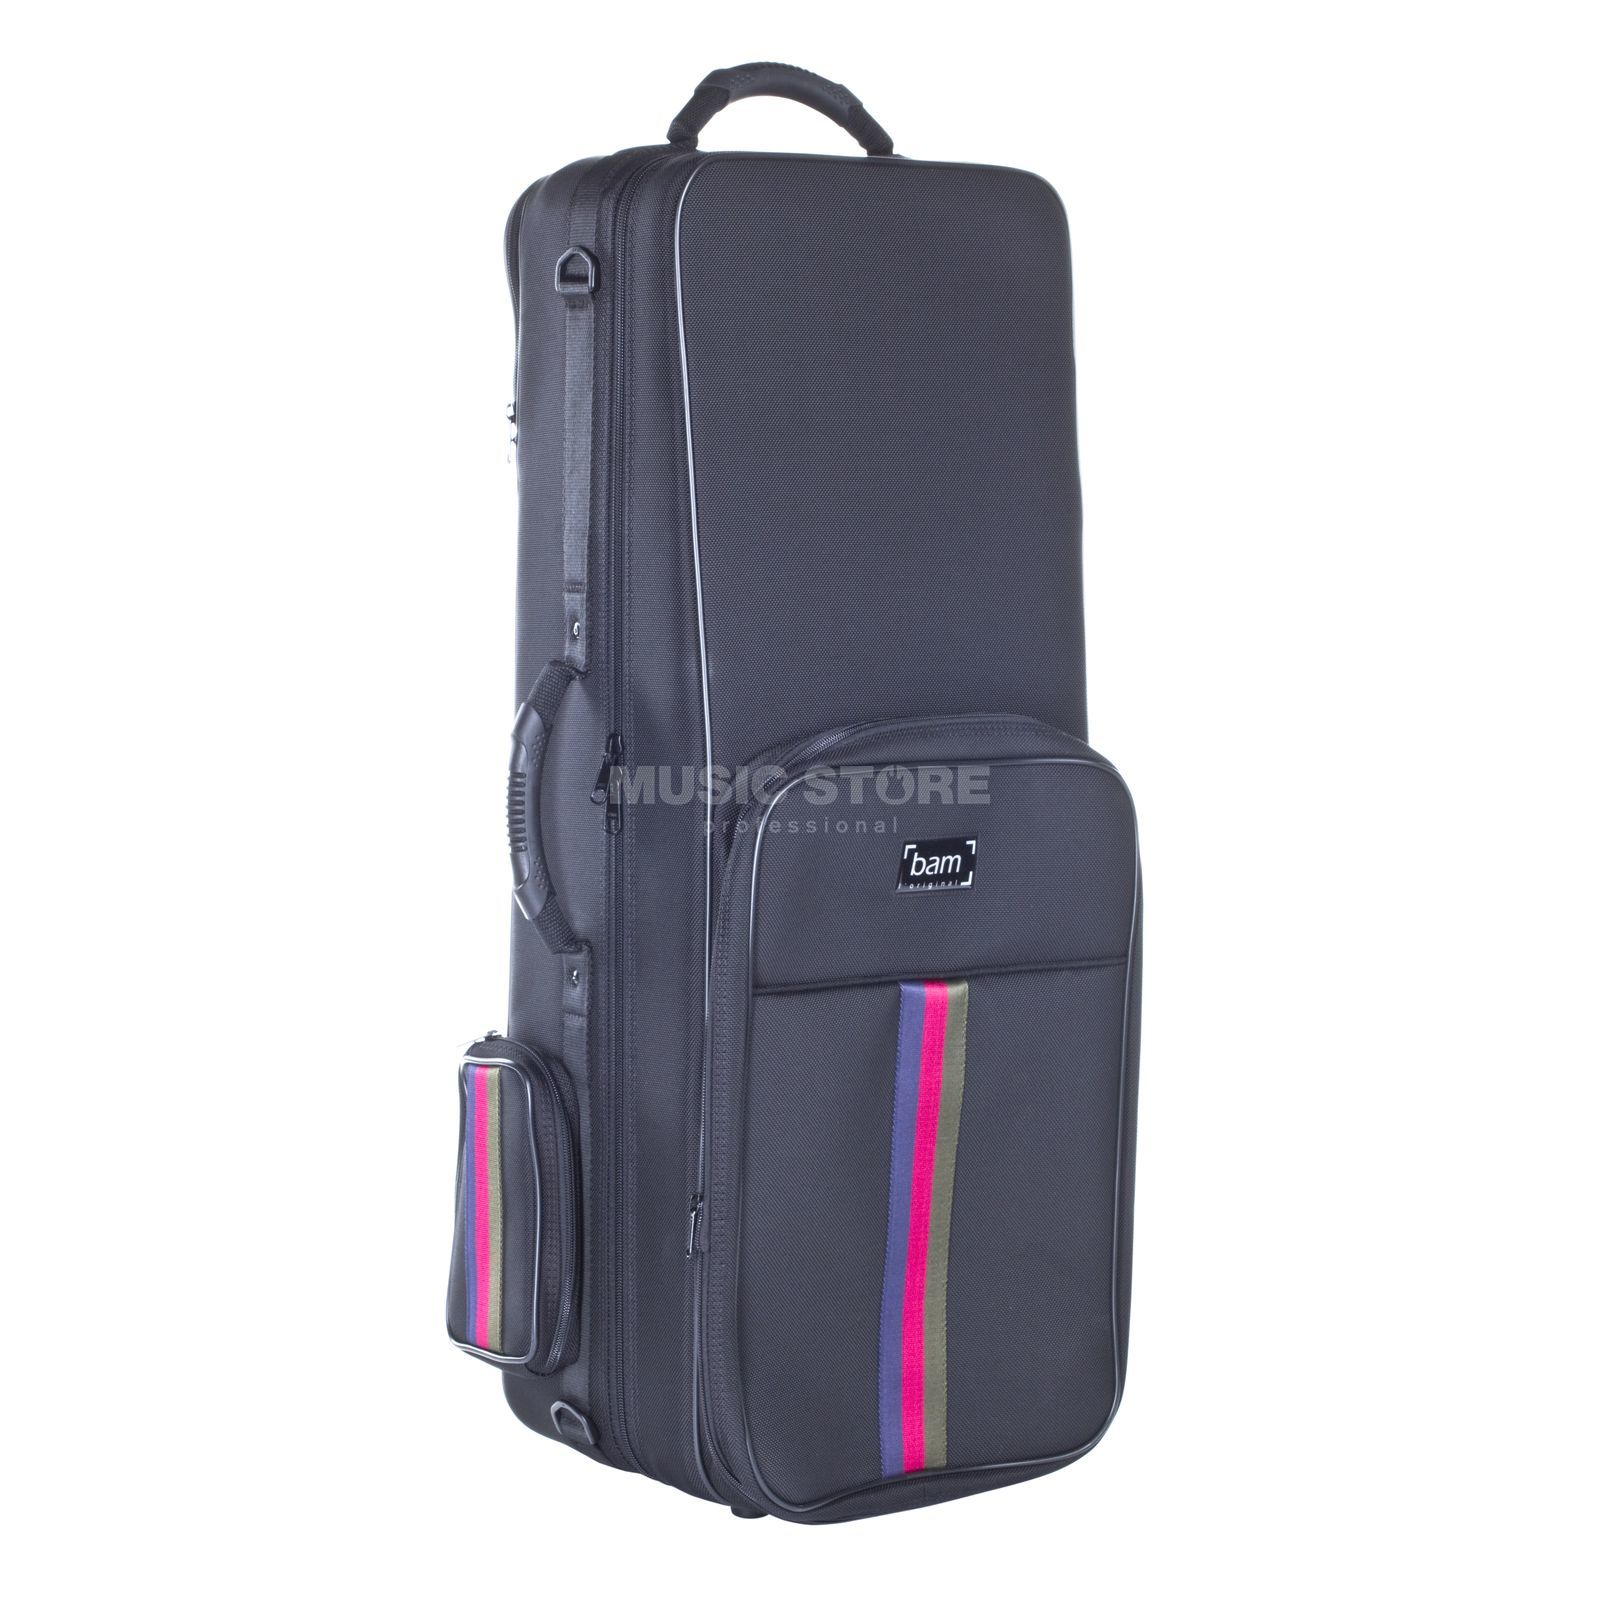 Bam SG3021SN Alto Sax Saint Germain Trekking Case - Black Product Image